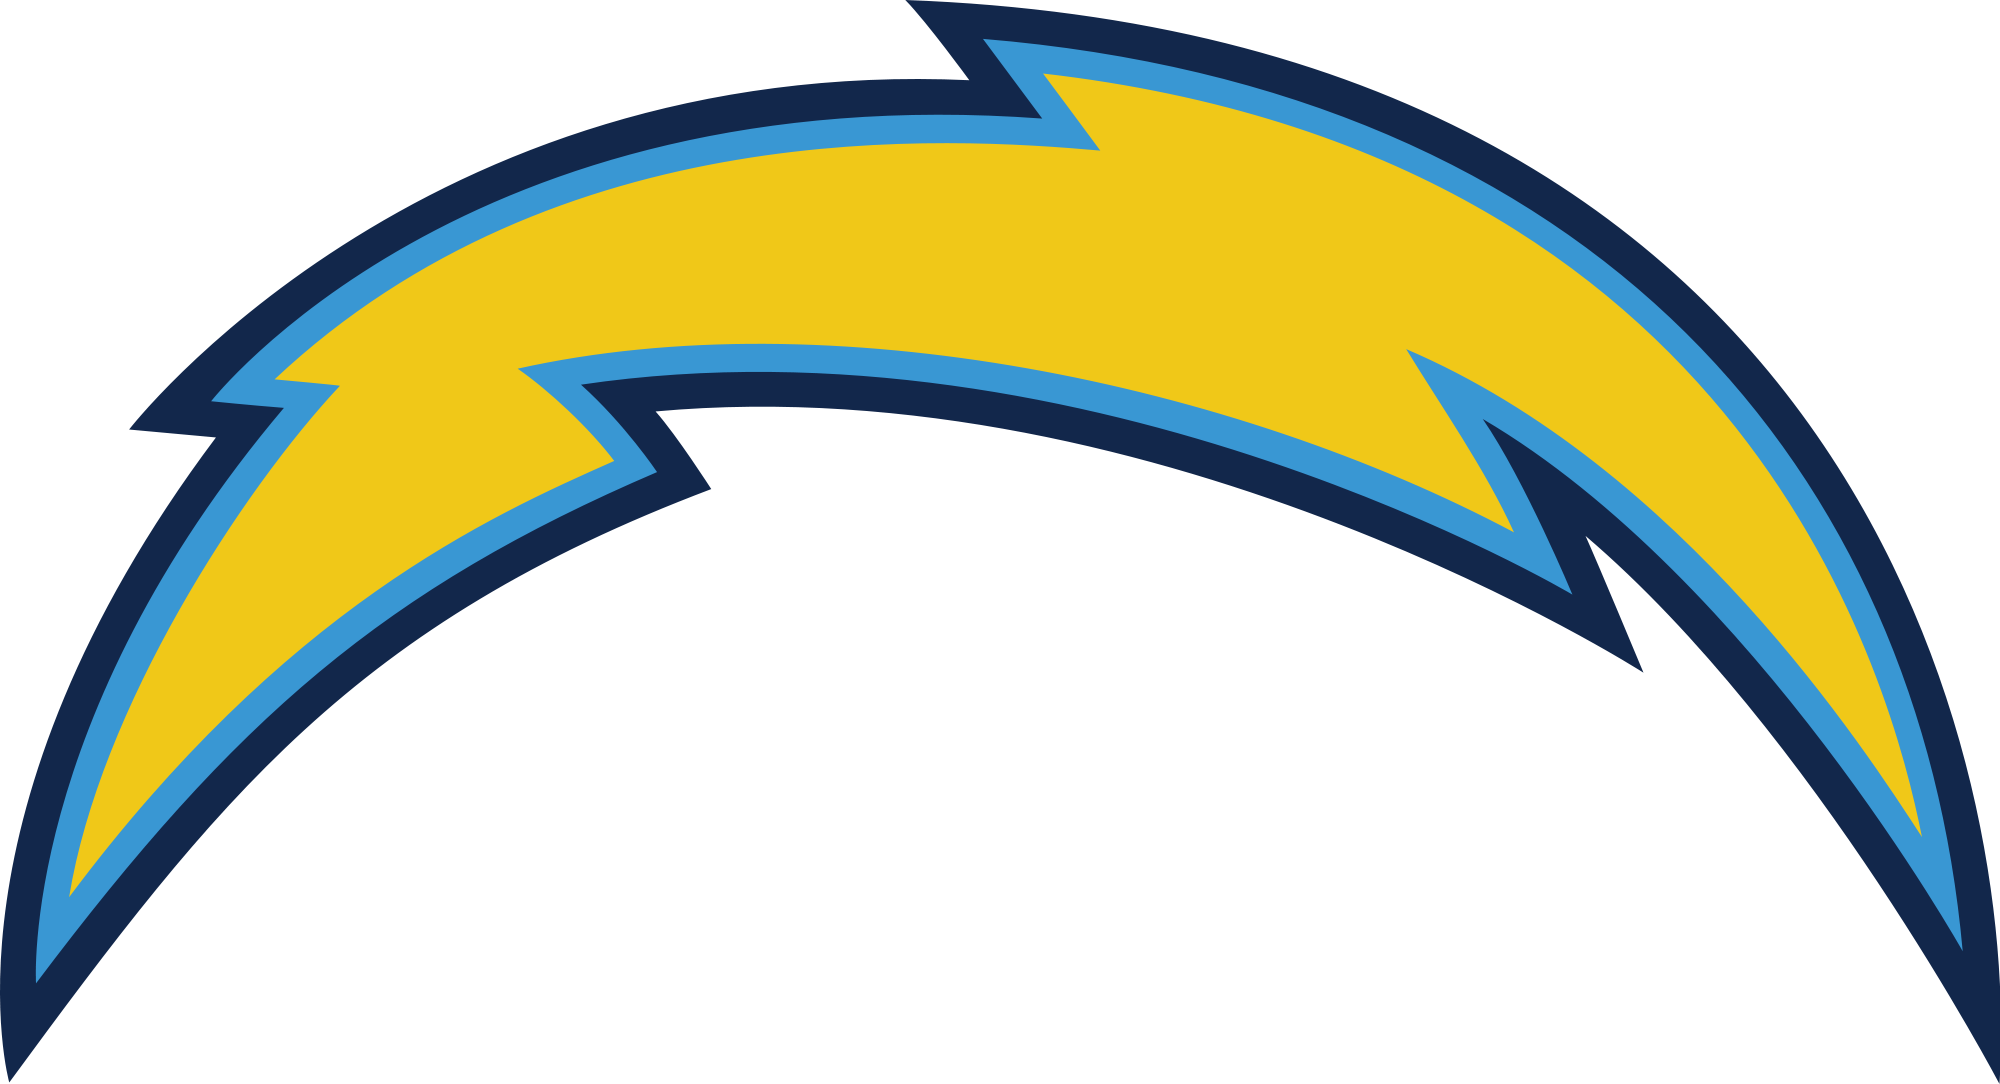 San Diego Chargers 2000x1084